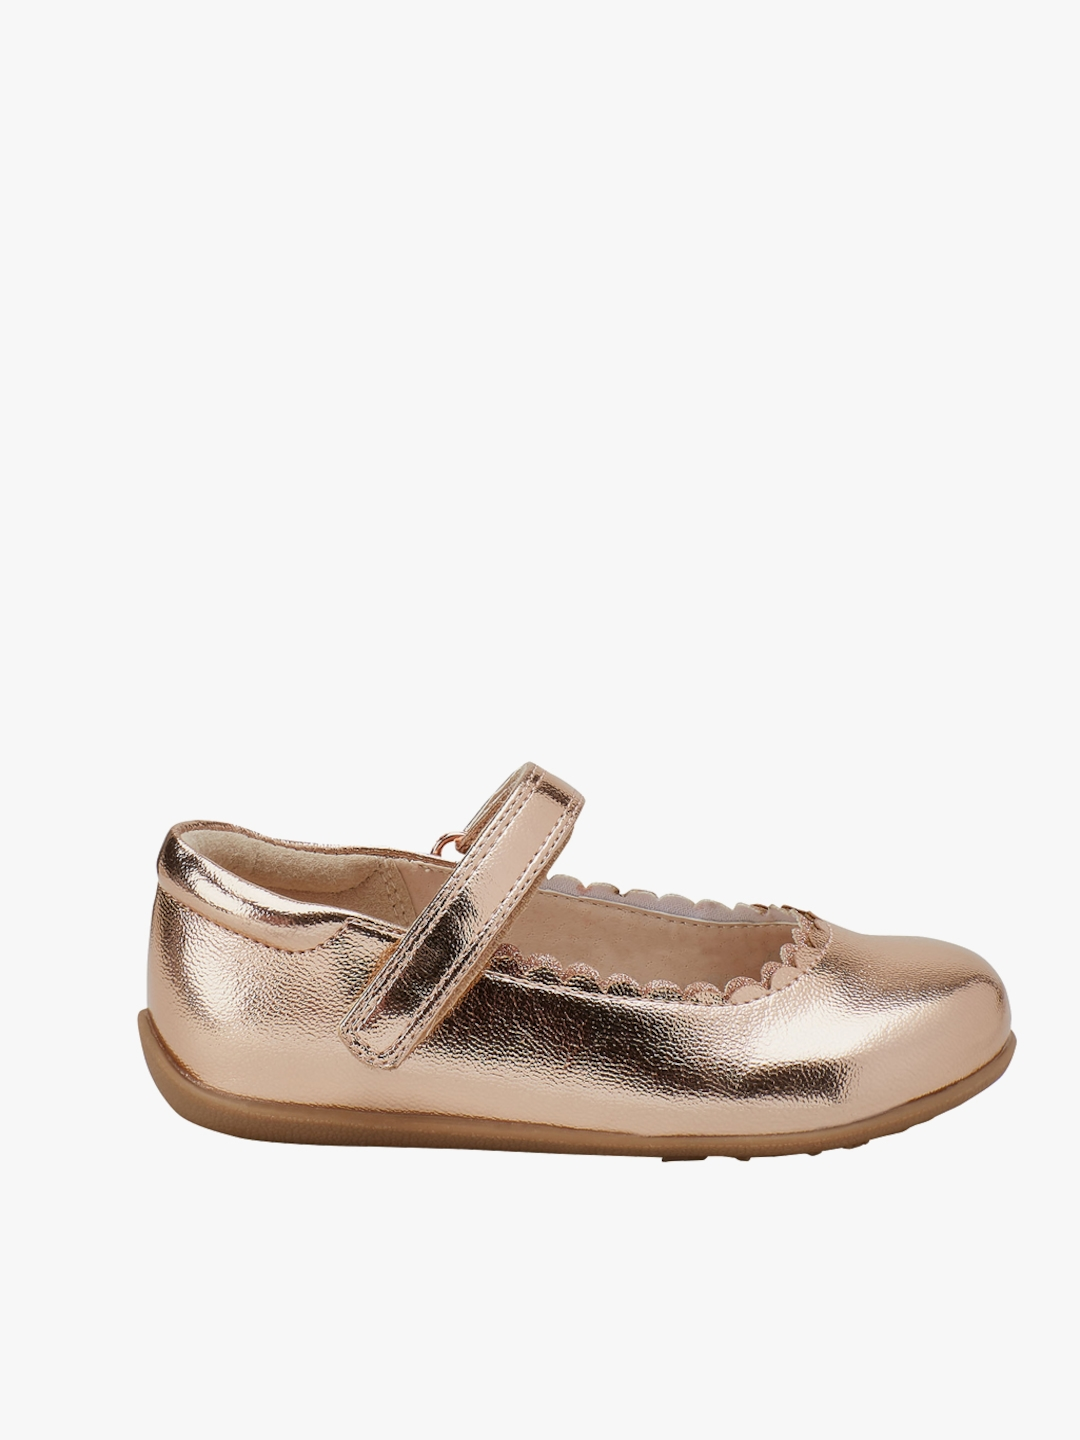 c0dfd27c68d5 Buy Next Rose Gold Toned Scallop Mary Jane Shoes - Flats for Girls ...